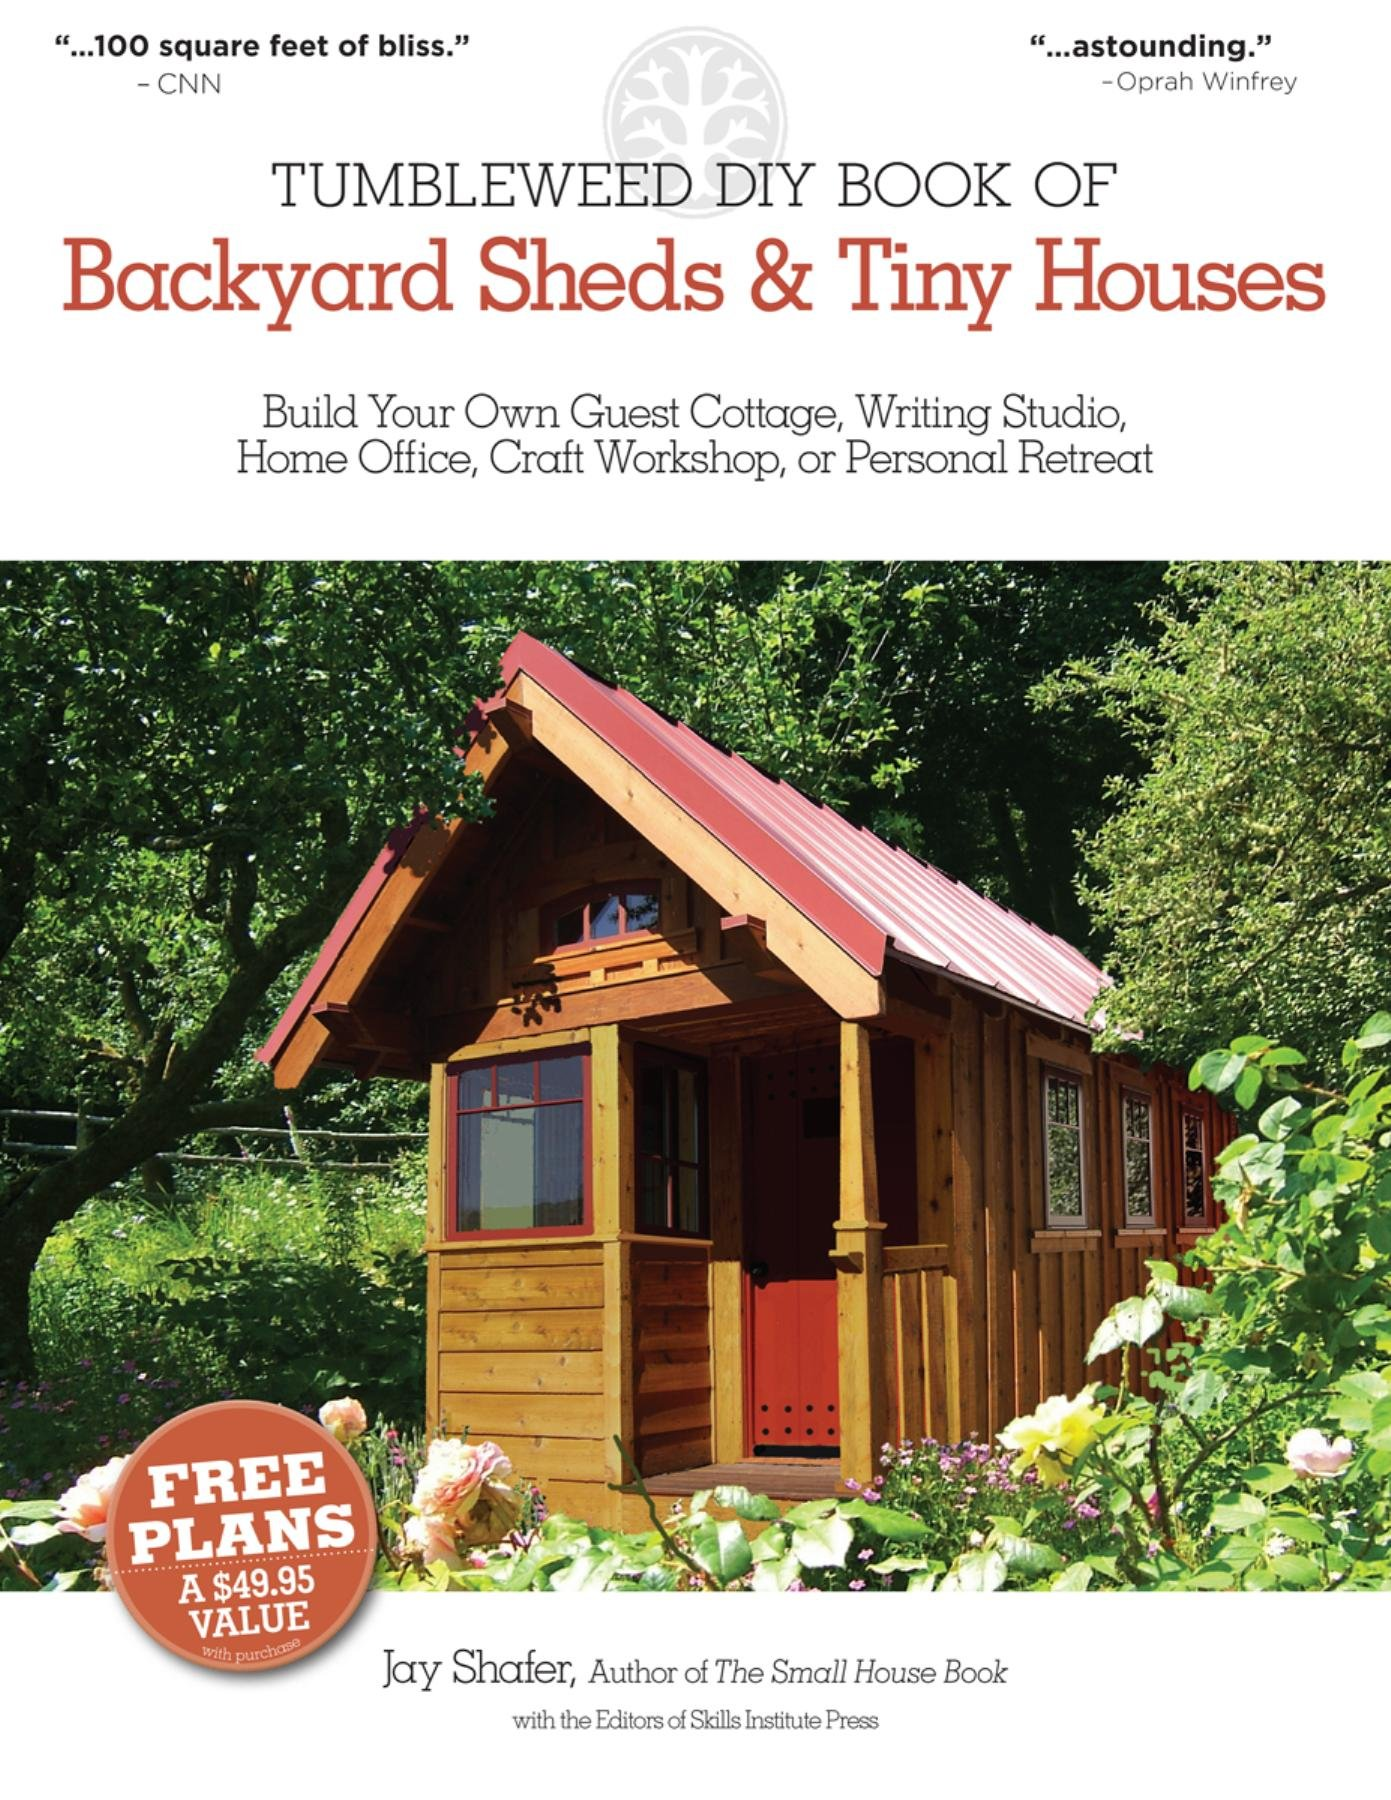 The tumbleweed diy book of backyard sheds and tiny houses build the tumbleweed diy book of backyard sheds and tiny houses build your own guest cottage writing studio home office craft workshop or personal retreat solutioingenieria Images